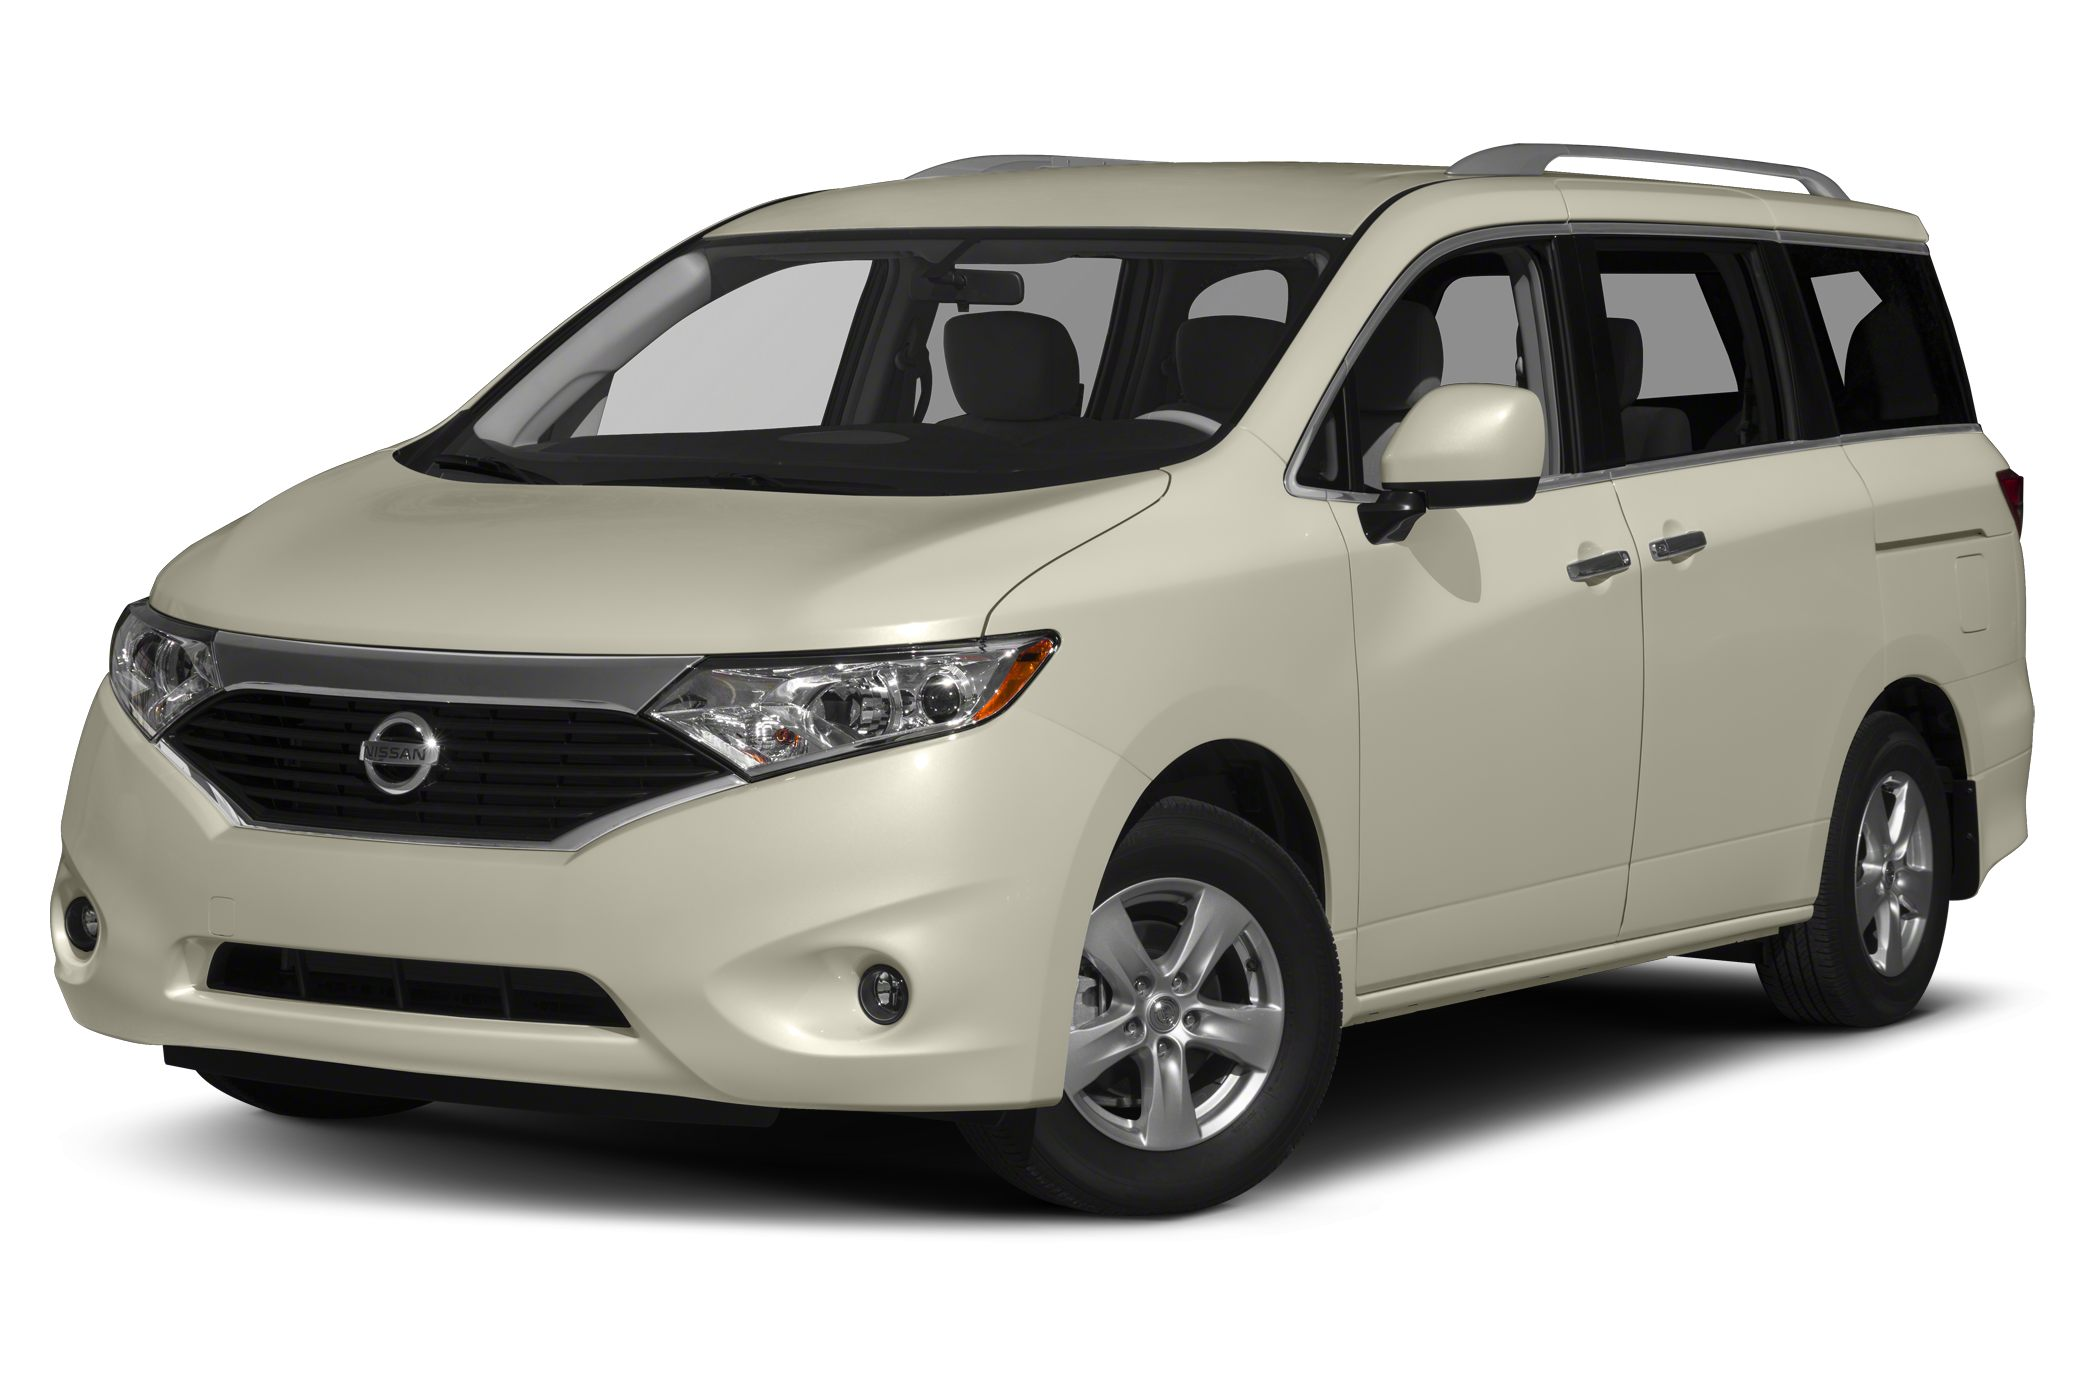 2014 Nissan Quest For Sale >> Nissan Quest News, Photos and Buying Information - Autoblog